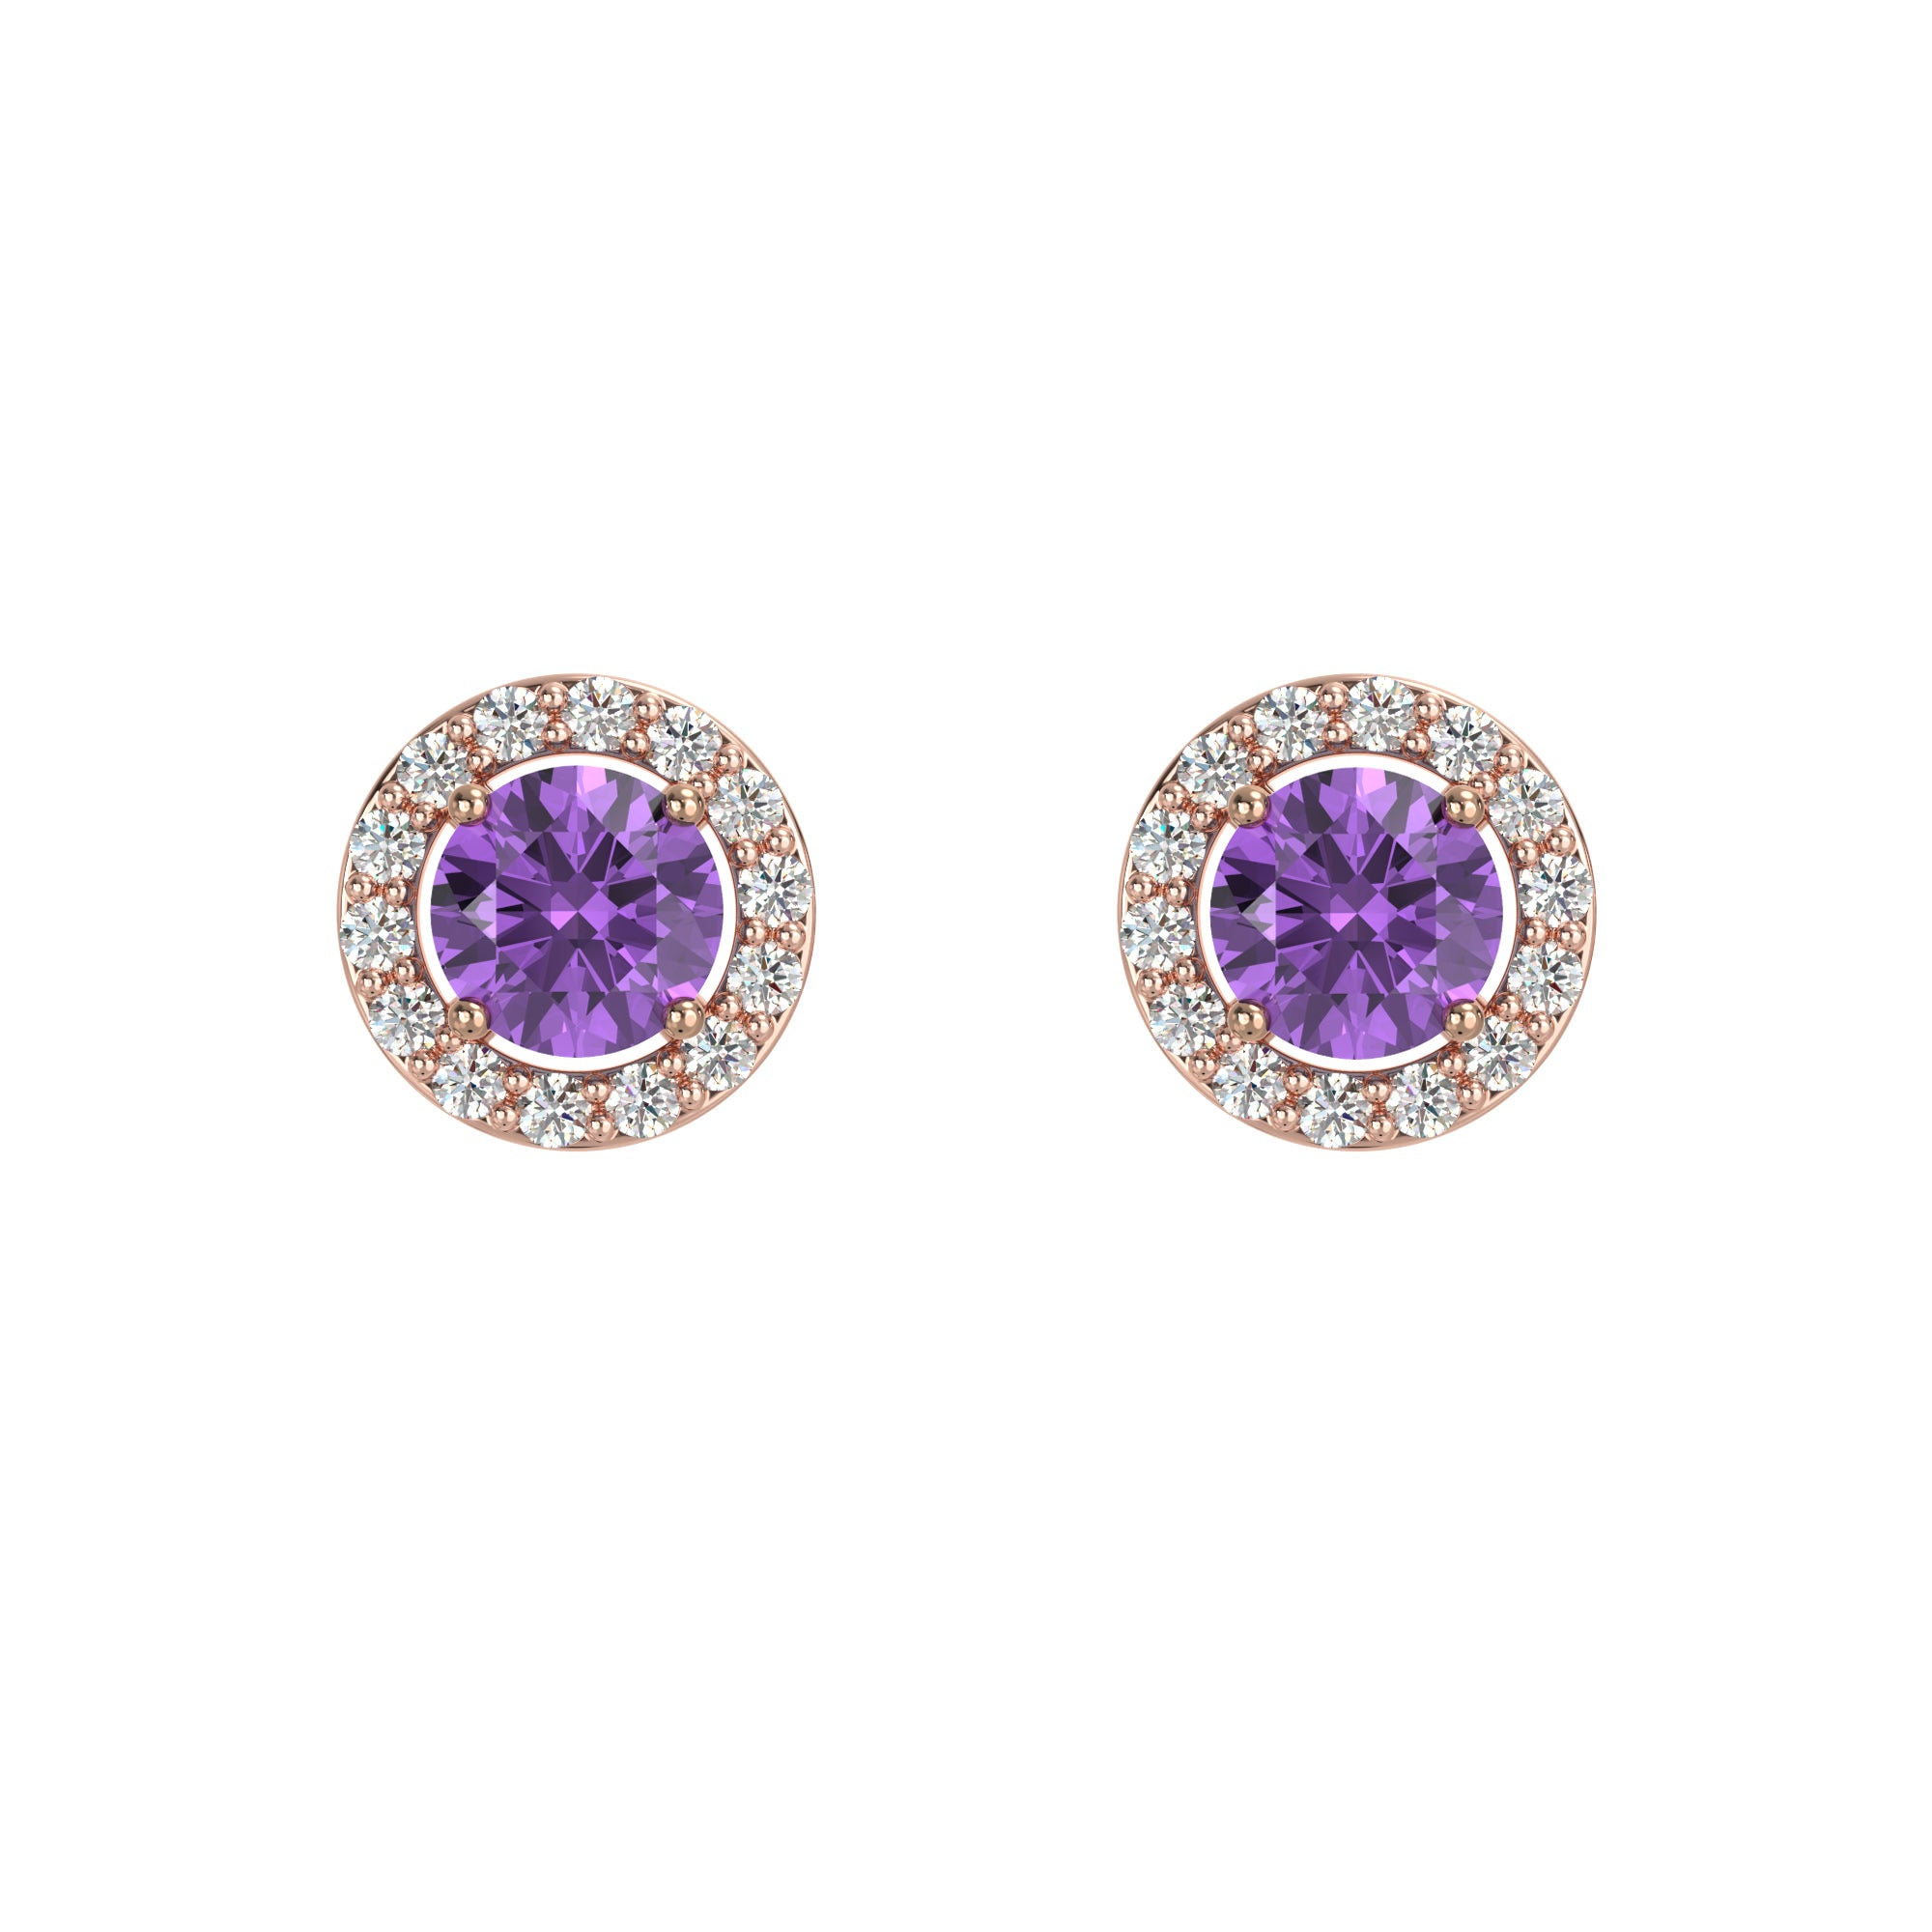 925 Silver Luxe Series Earring - Lydia (Amethyst) - Rose Gold Plated